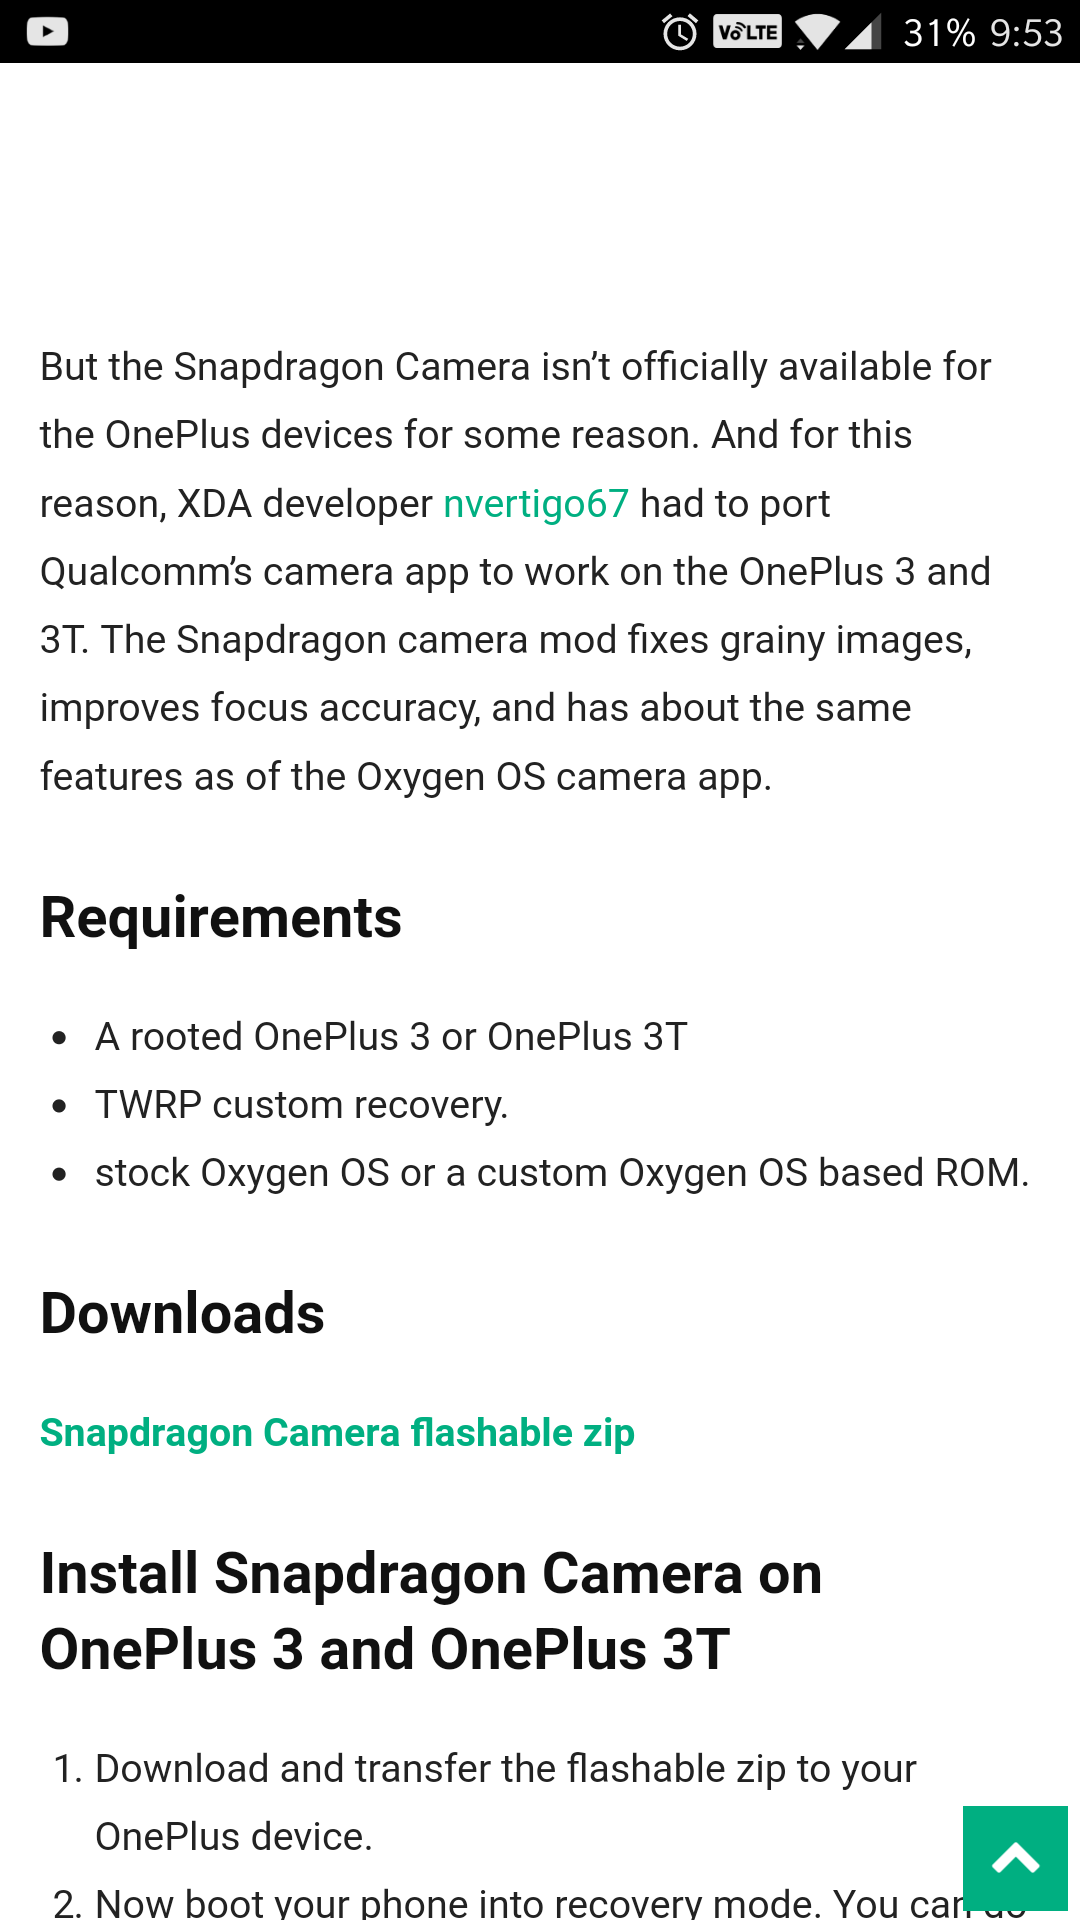 download snapdragon cam so cool - OnePlus Community